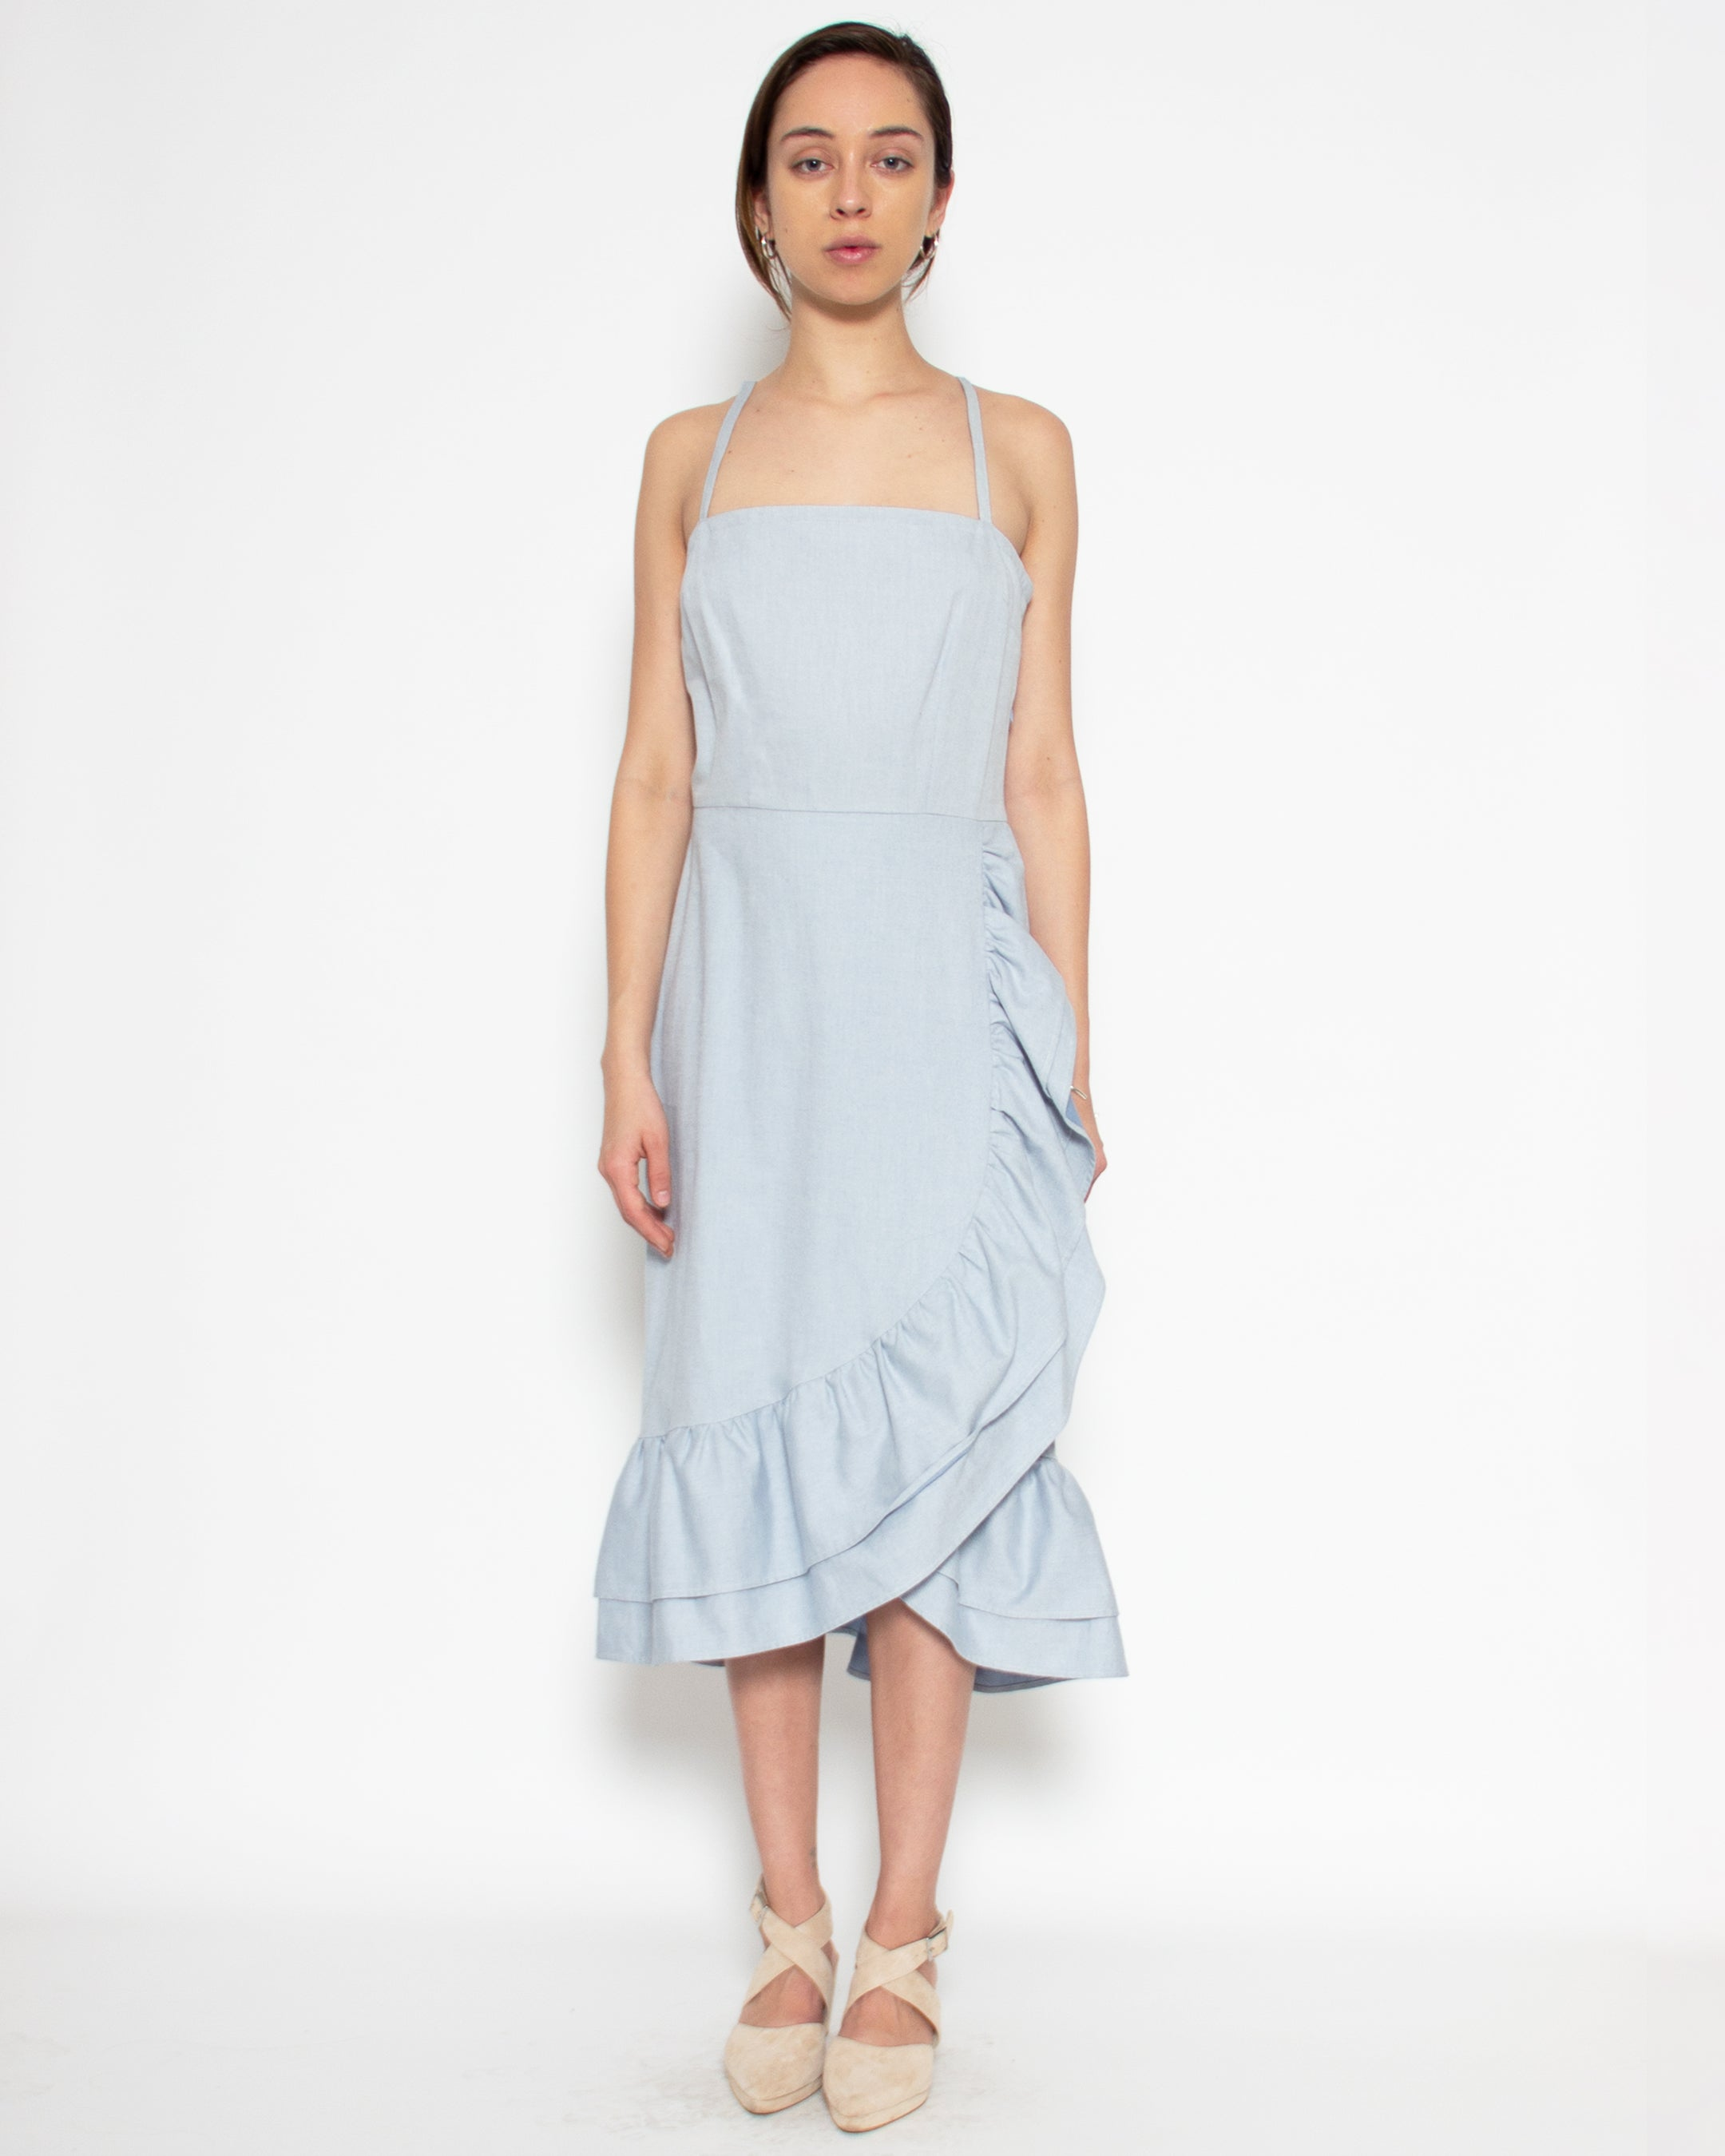 Narella Dress in Sky Organic Cotton Twill